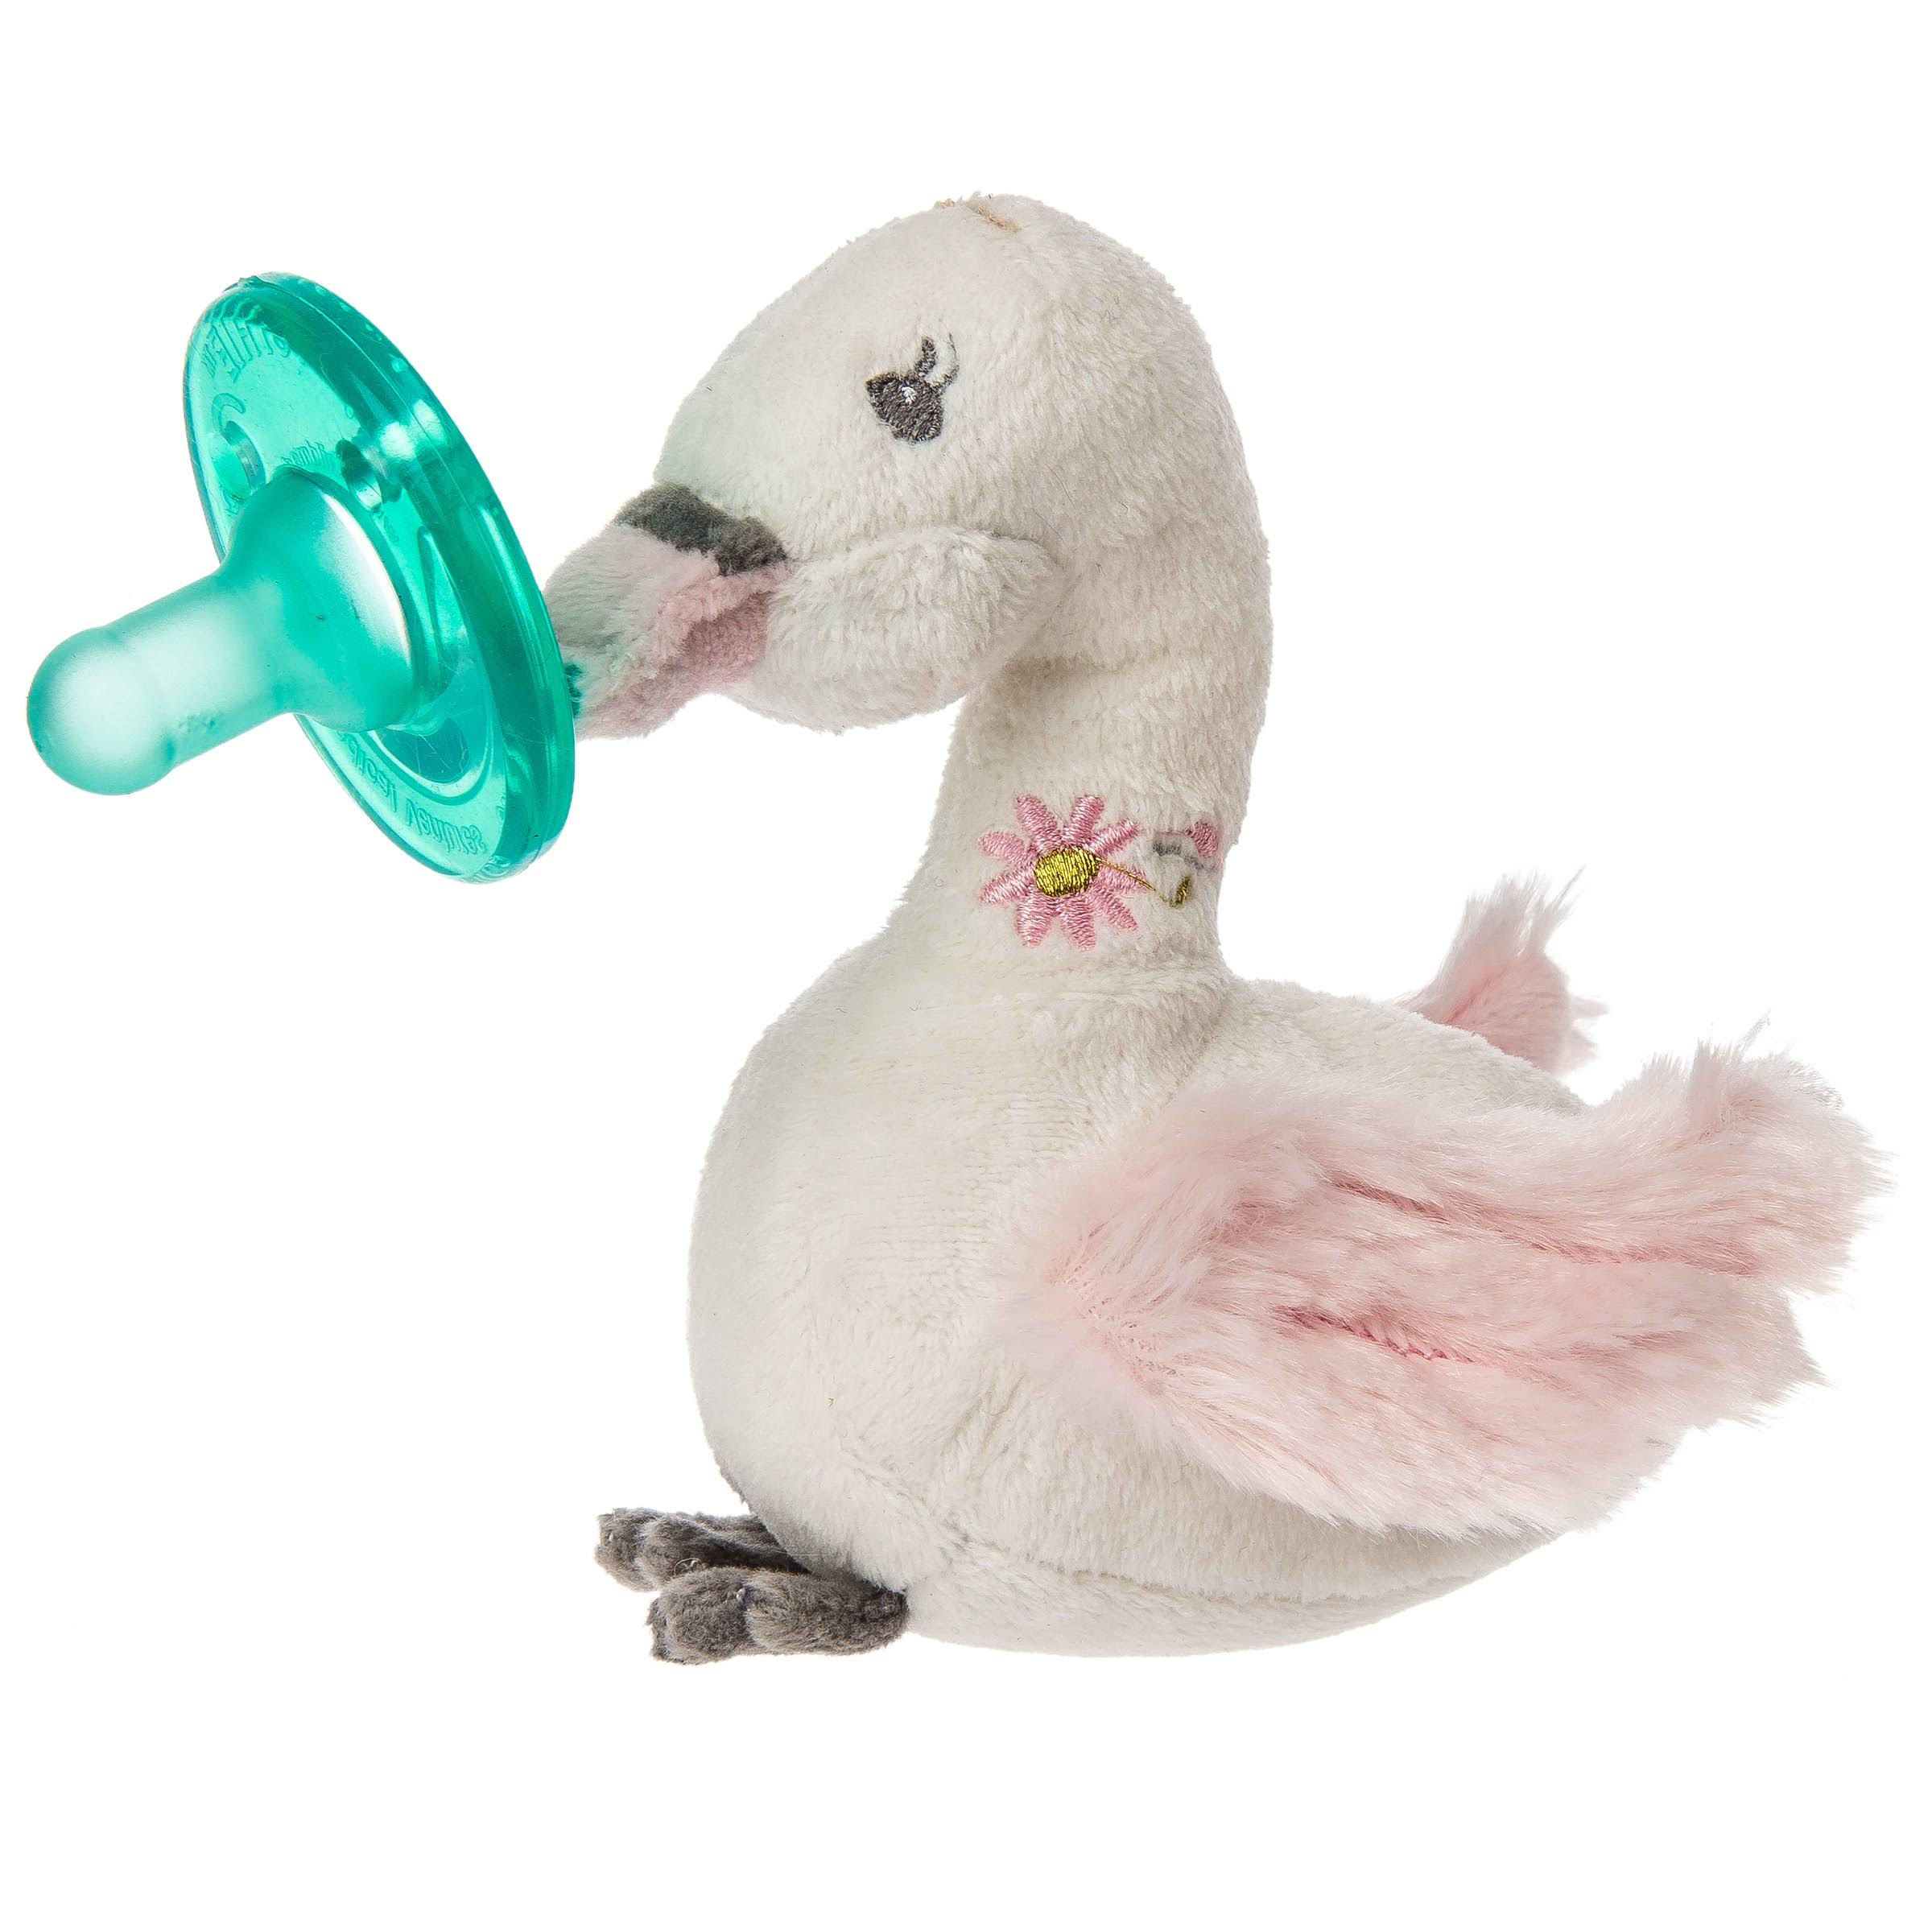 Mary Meyer WubbaNub Soft Toy and Infant Pacifier - Itsy Glitzy Swan, Green